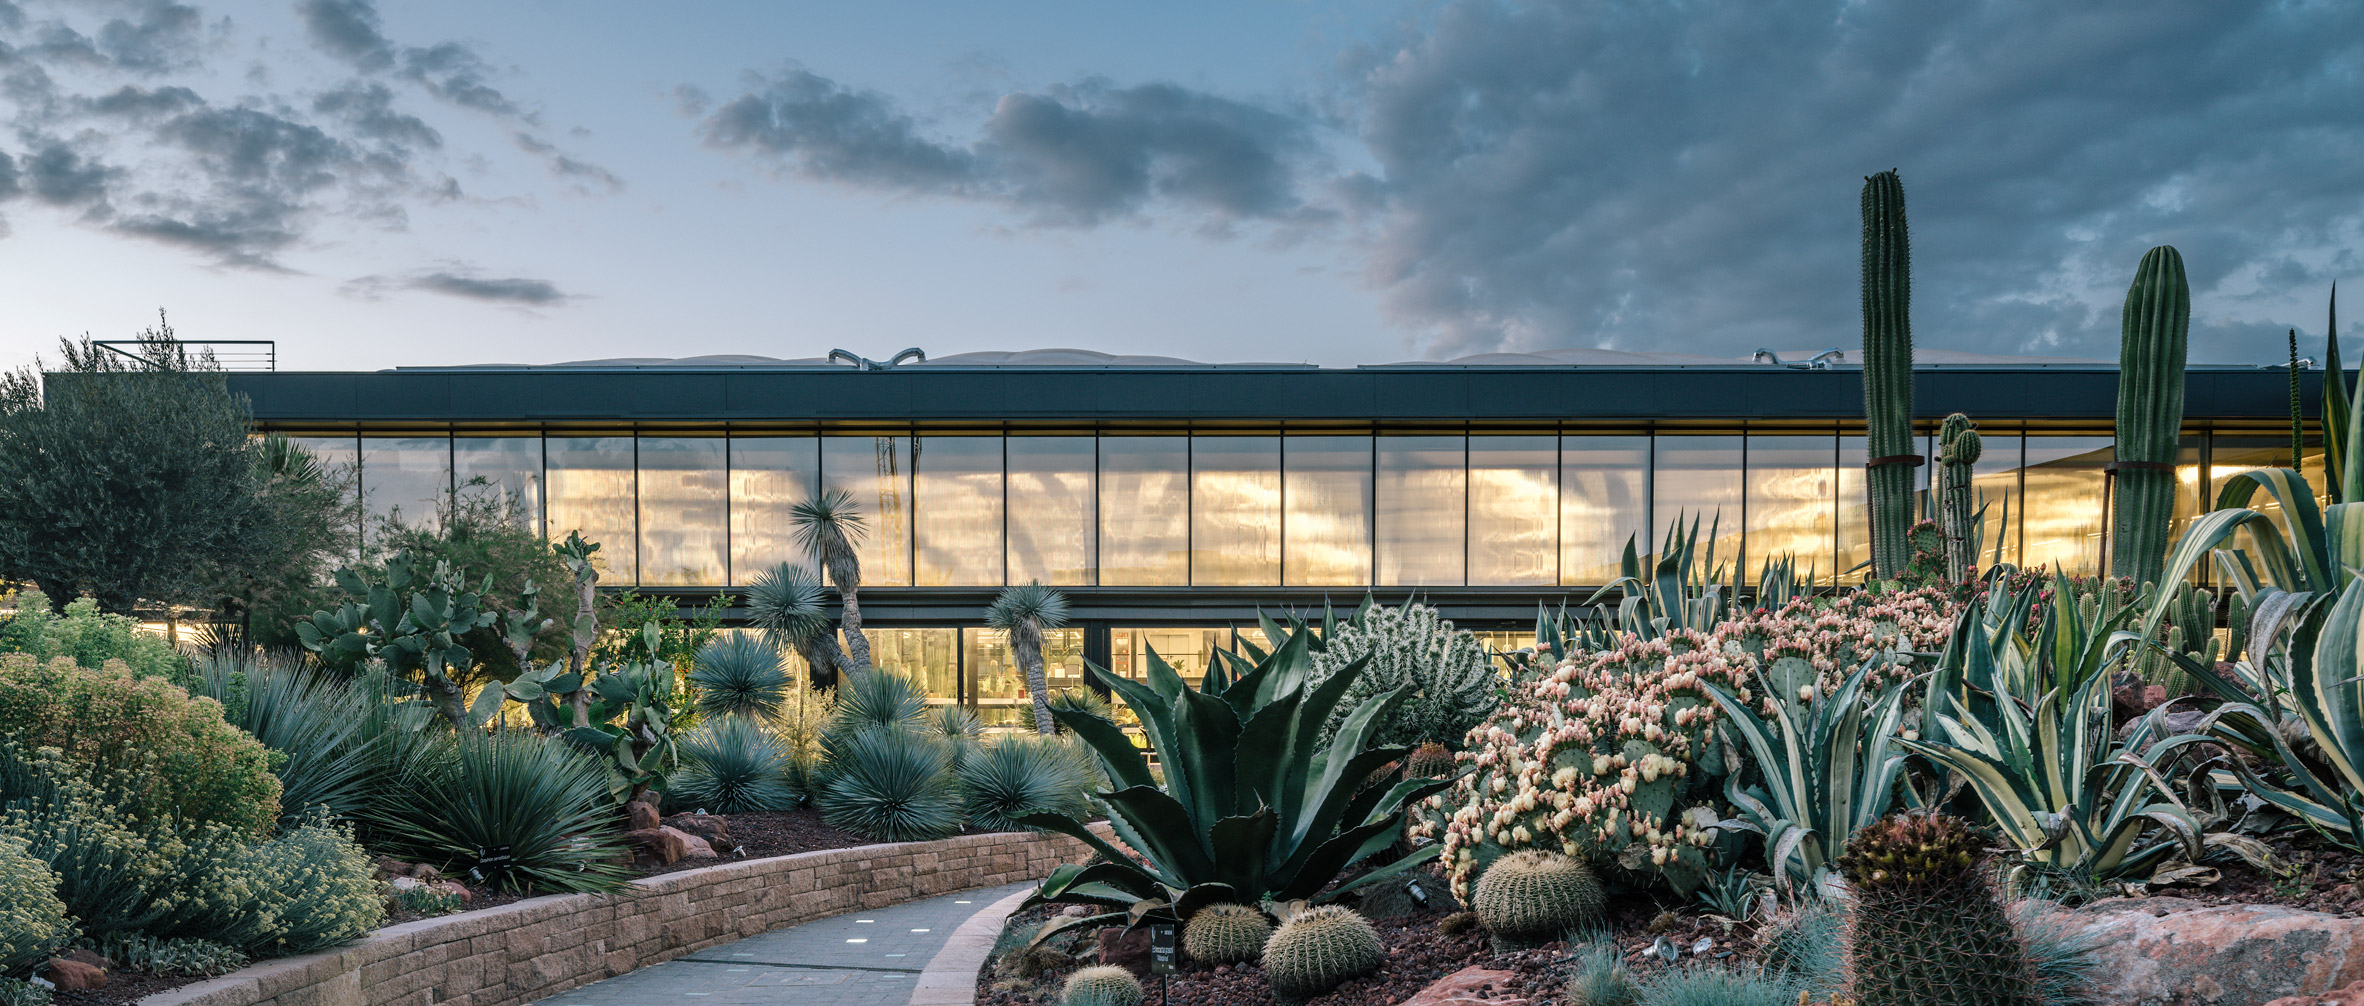 Garciagerman Arquitectos' Desert City centre is dedicated to cactus aficionados